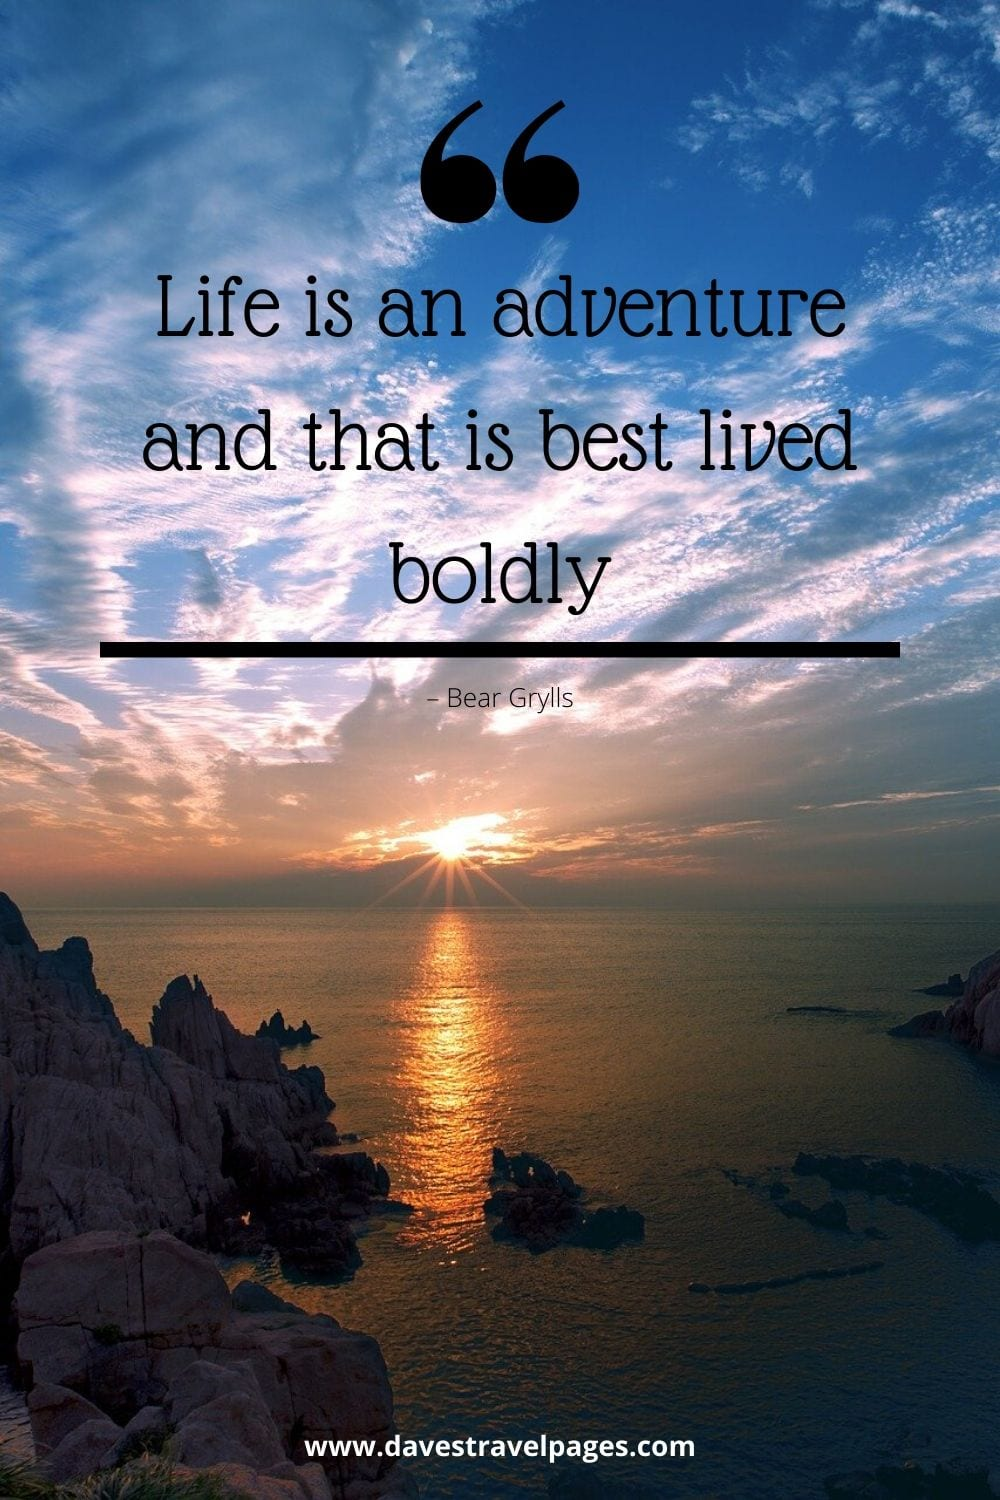 """Life is an adventure and that is best lived boldly.""– Quote by adventure traveler Bear Grylls"